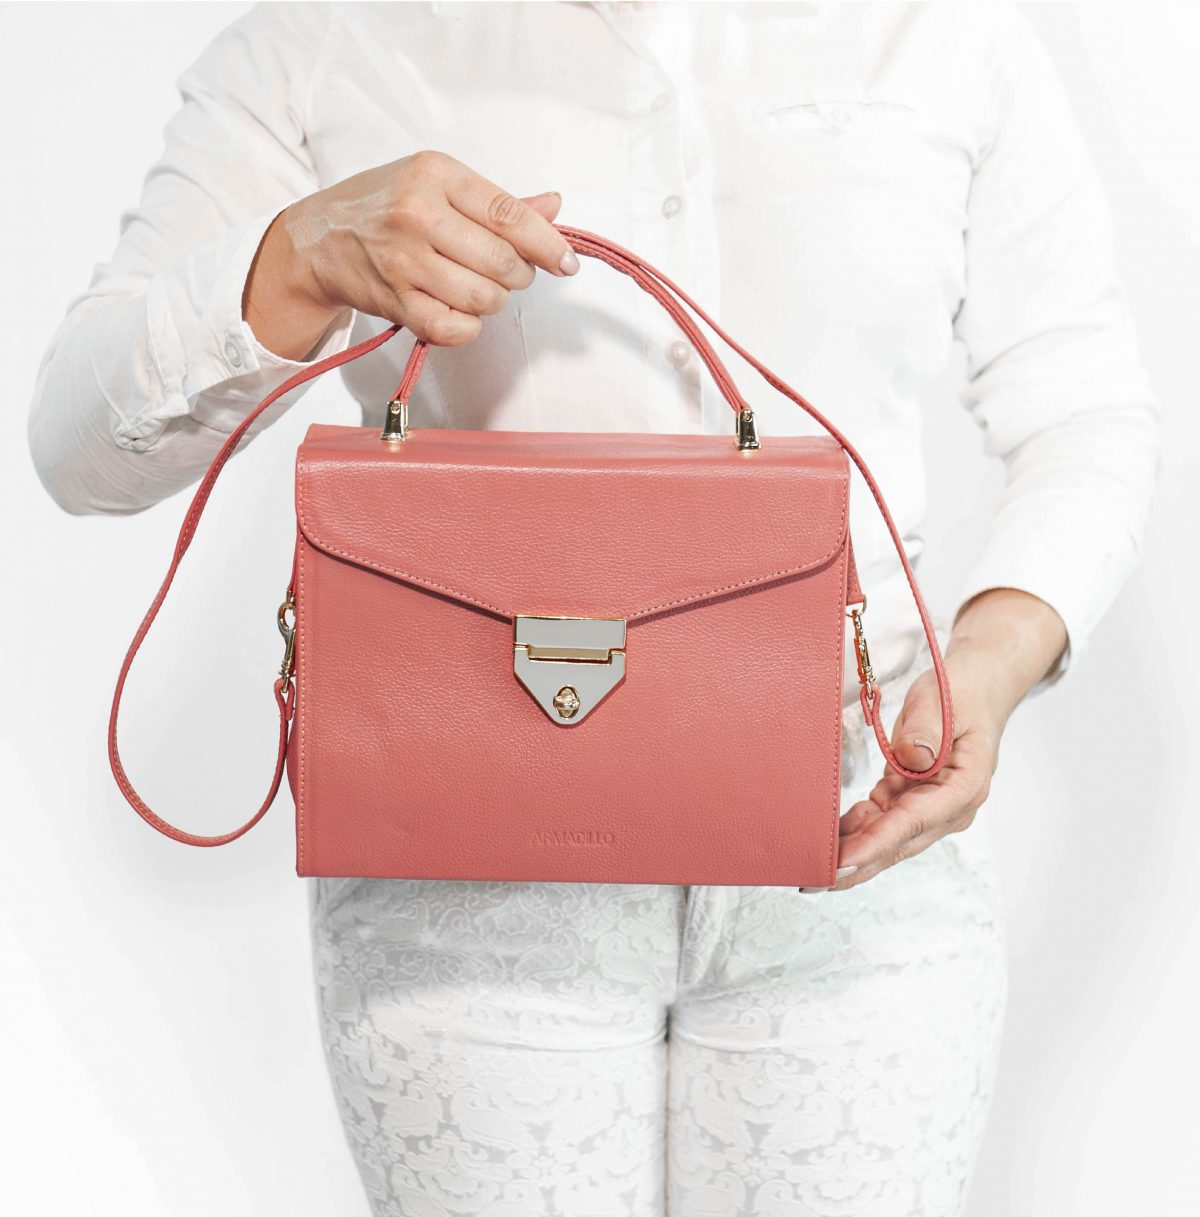 armadillo-leather-handbags-totes-wallets-clutches-backpack-small-leather-goods-accessories-office-travel-gifts-in-canada-img-slide-handbag-kate-spade-purse-coral